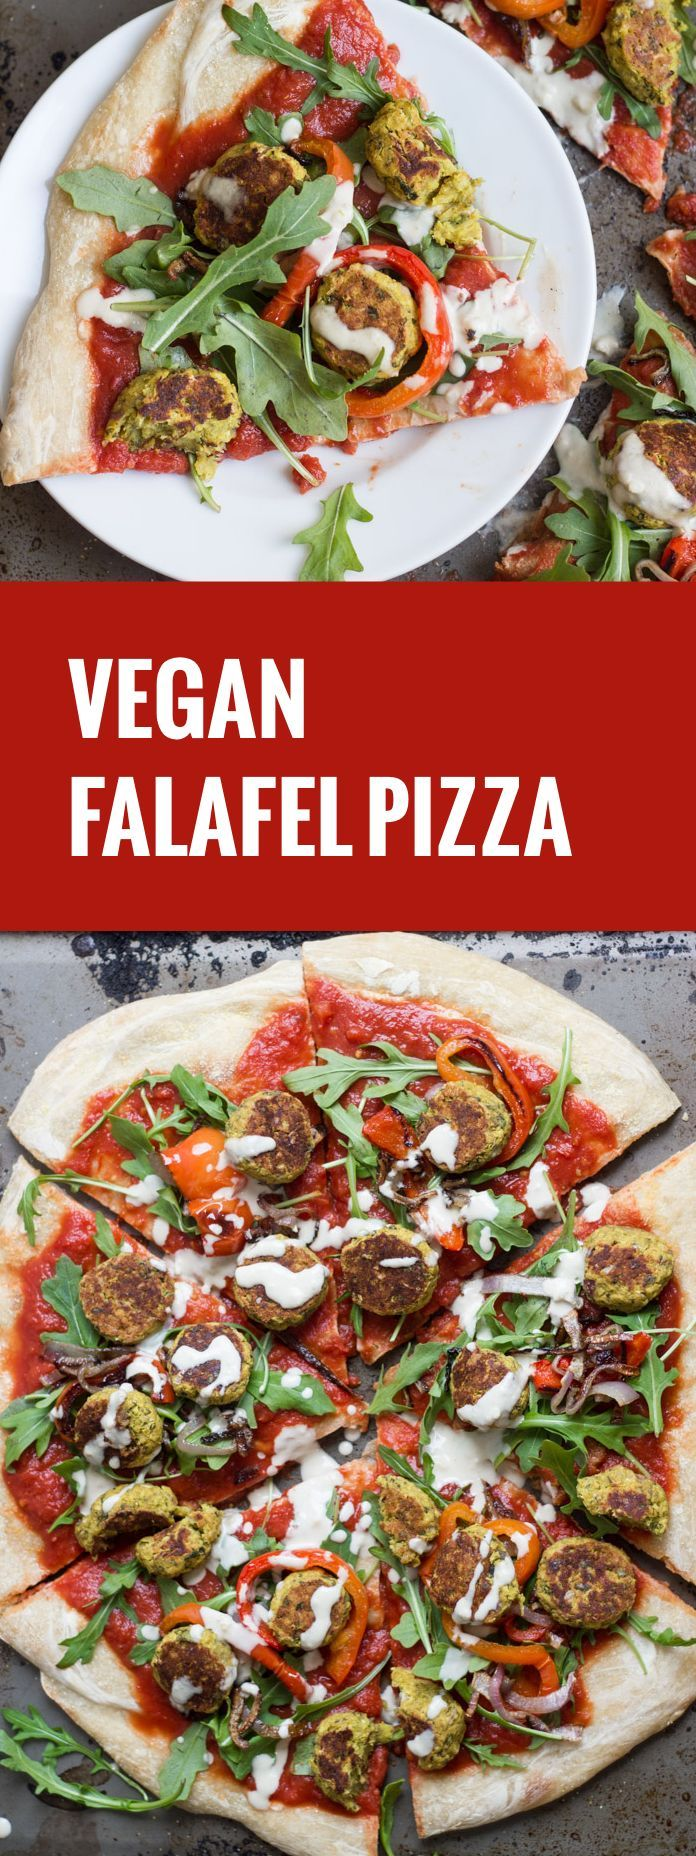 This vegan falafel pizza is made with spicy harissa-spiked tomato sauce, roasty-toasty onions and bell peppers, and creamy tahini sauce.